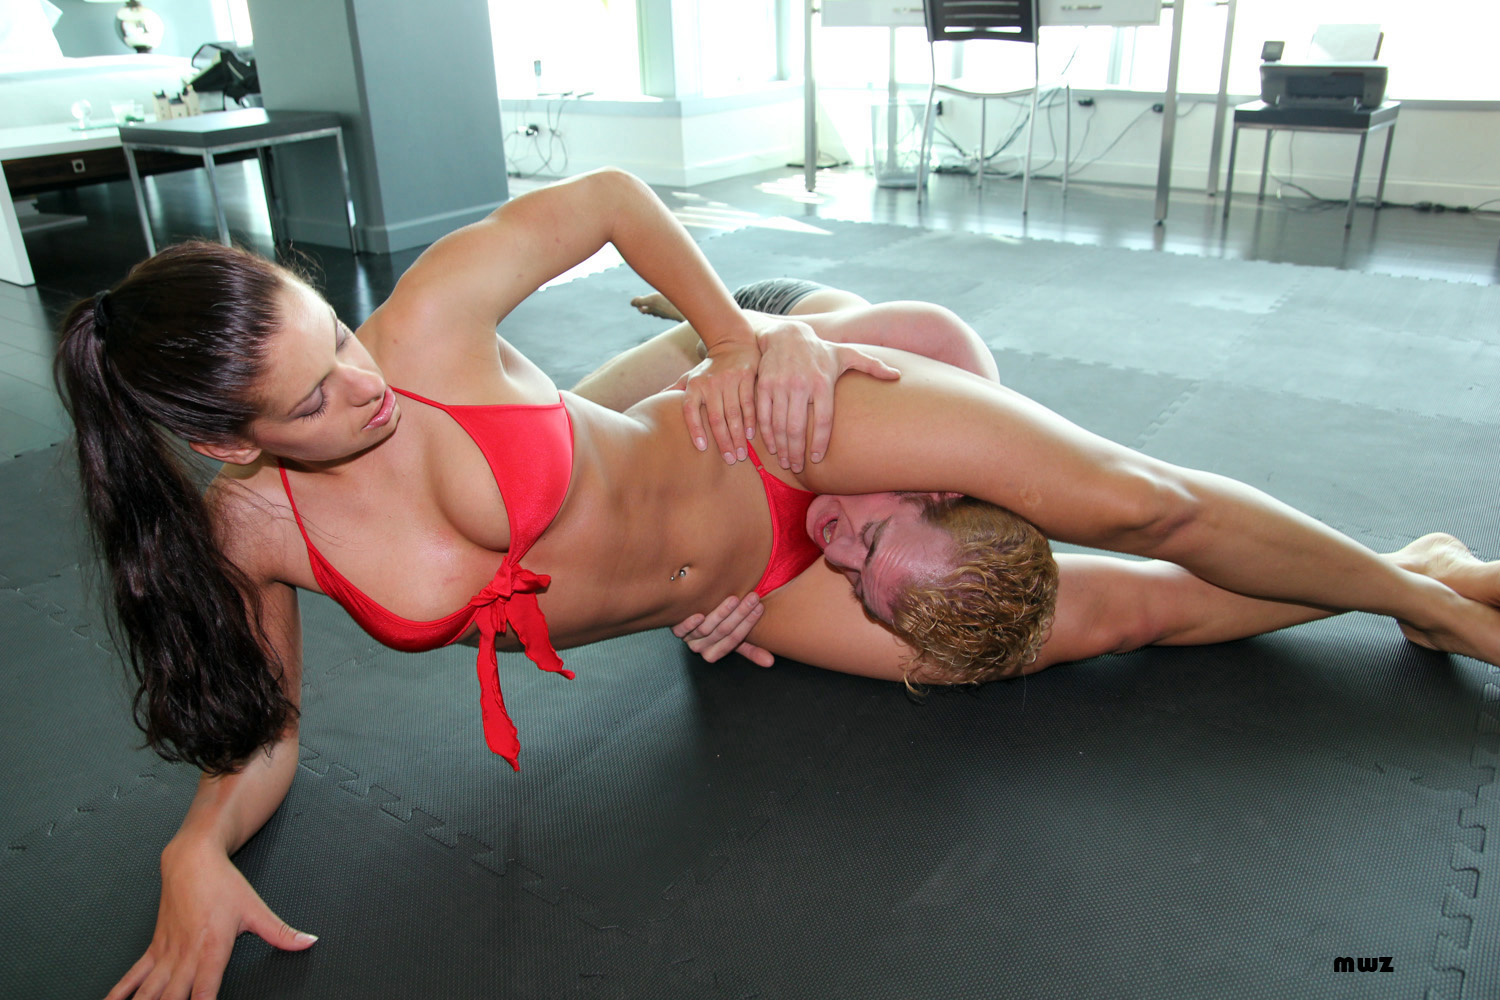 Inquiry skylar rene mixed wrestling are